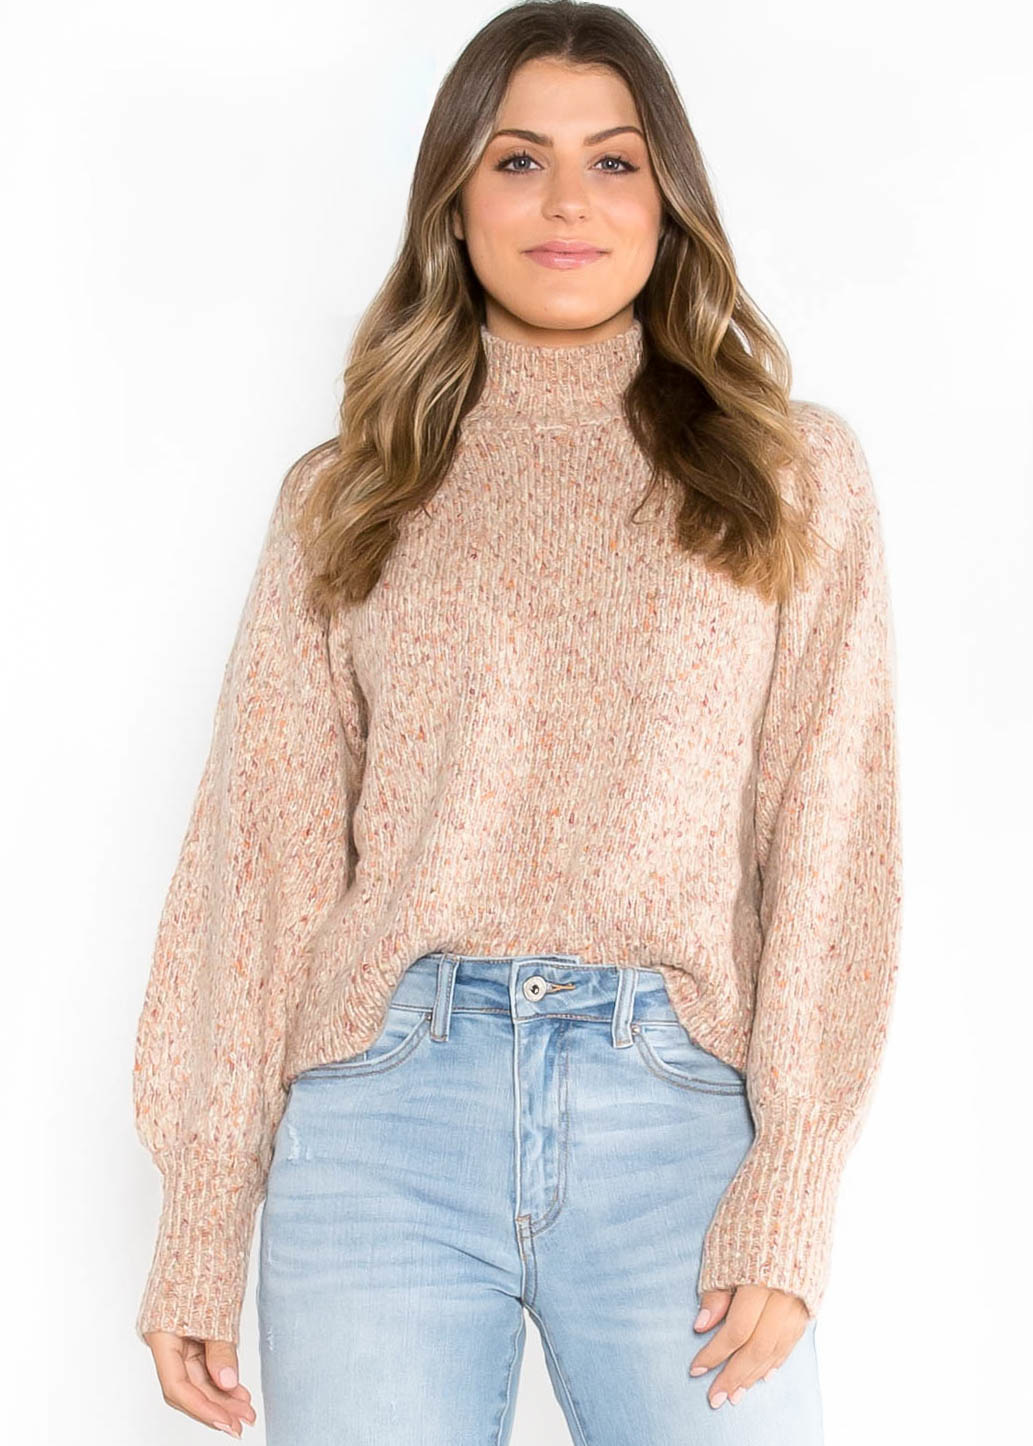 WILDFIRE SPECKLED SWEATER